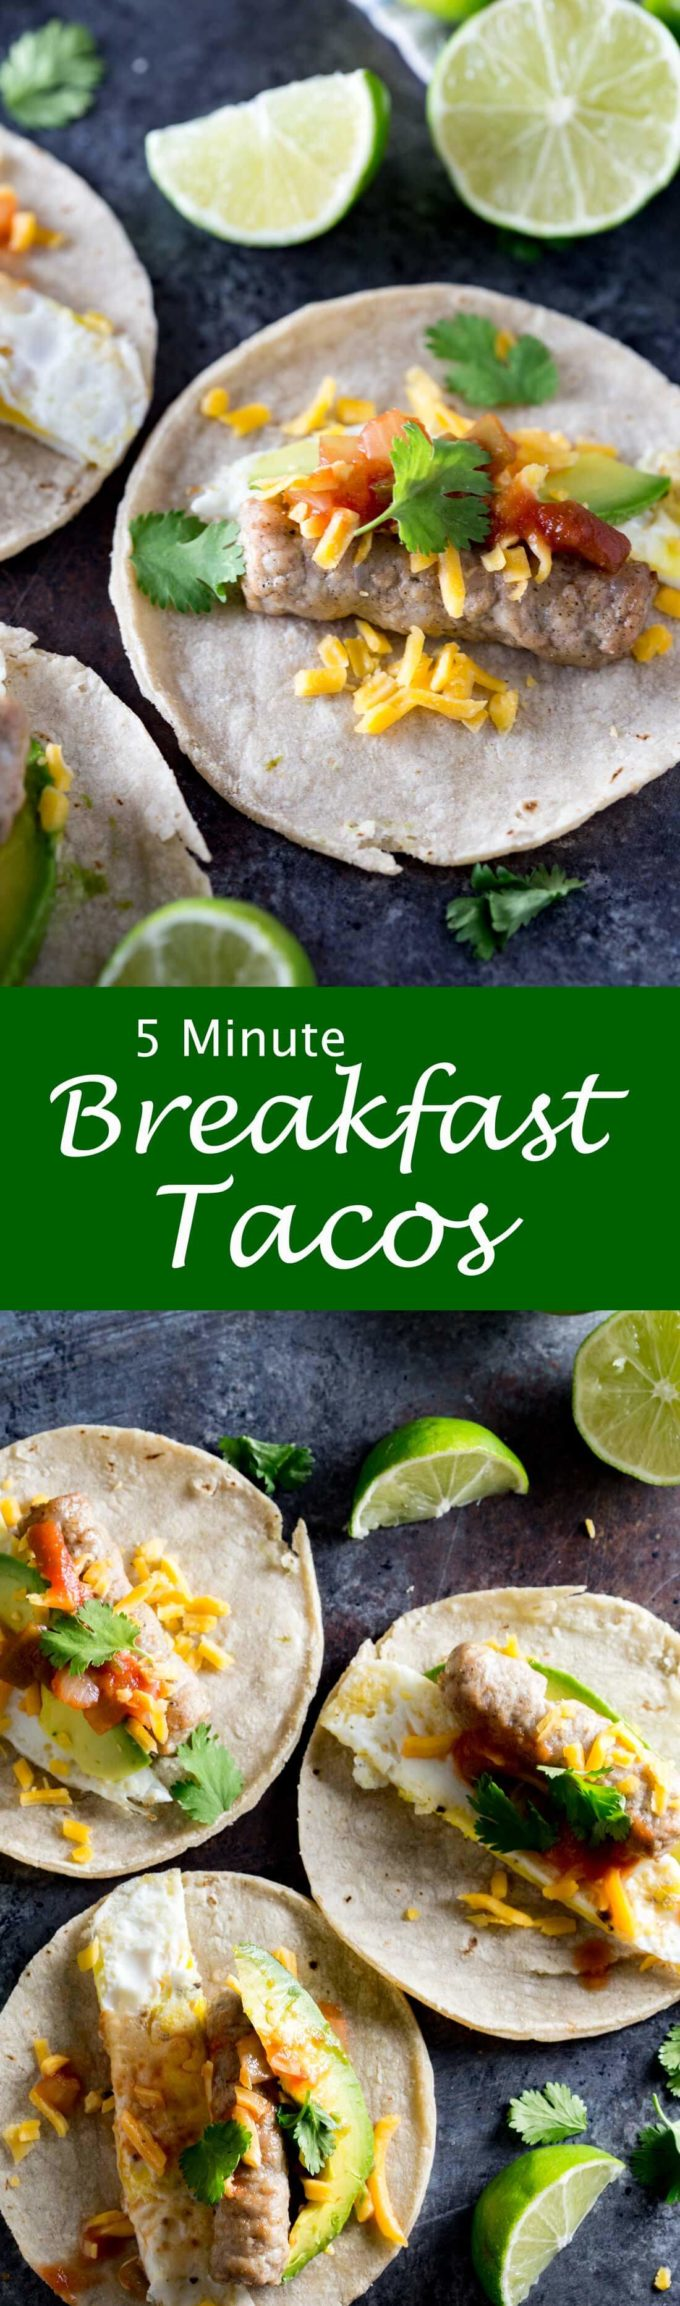 Breakfast-Tacos-PIN-2